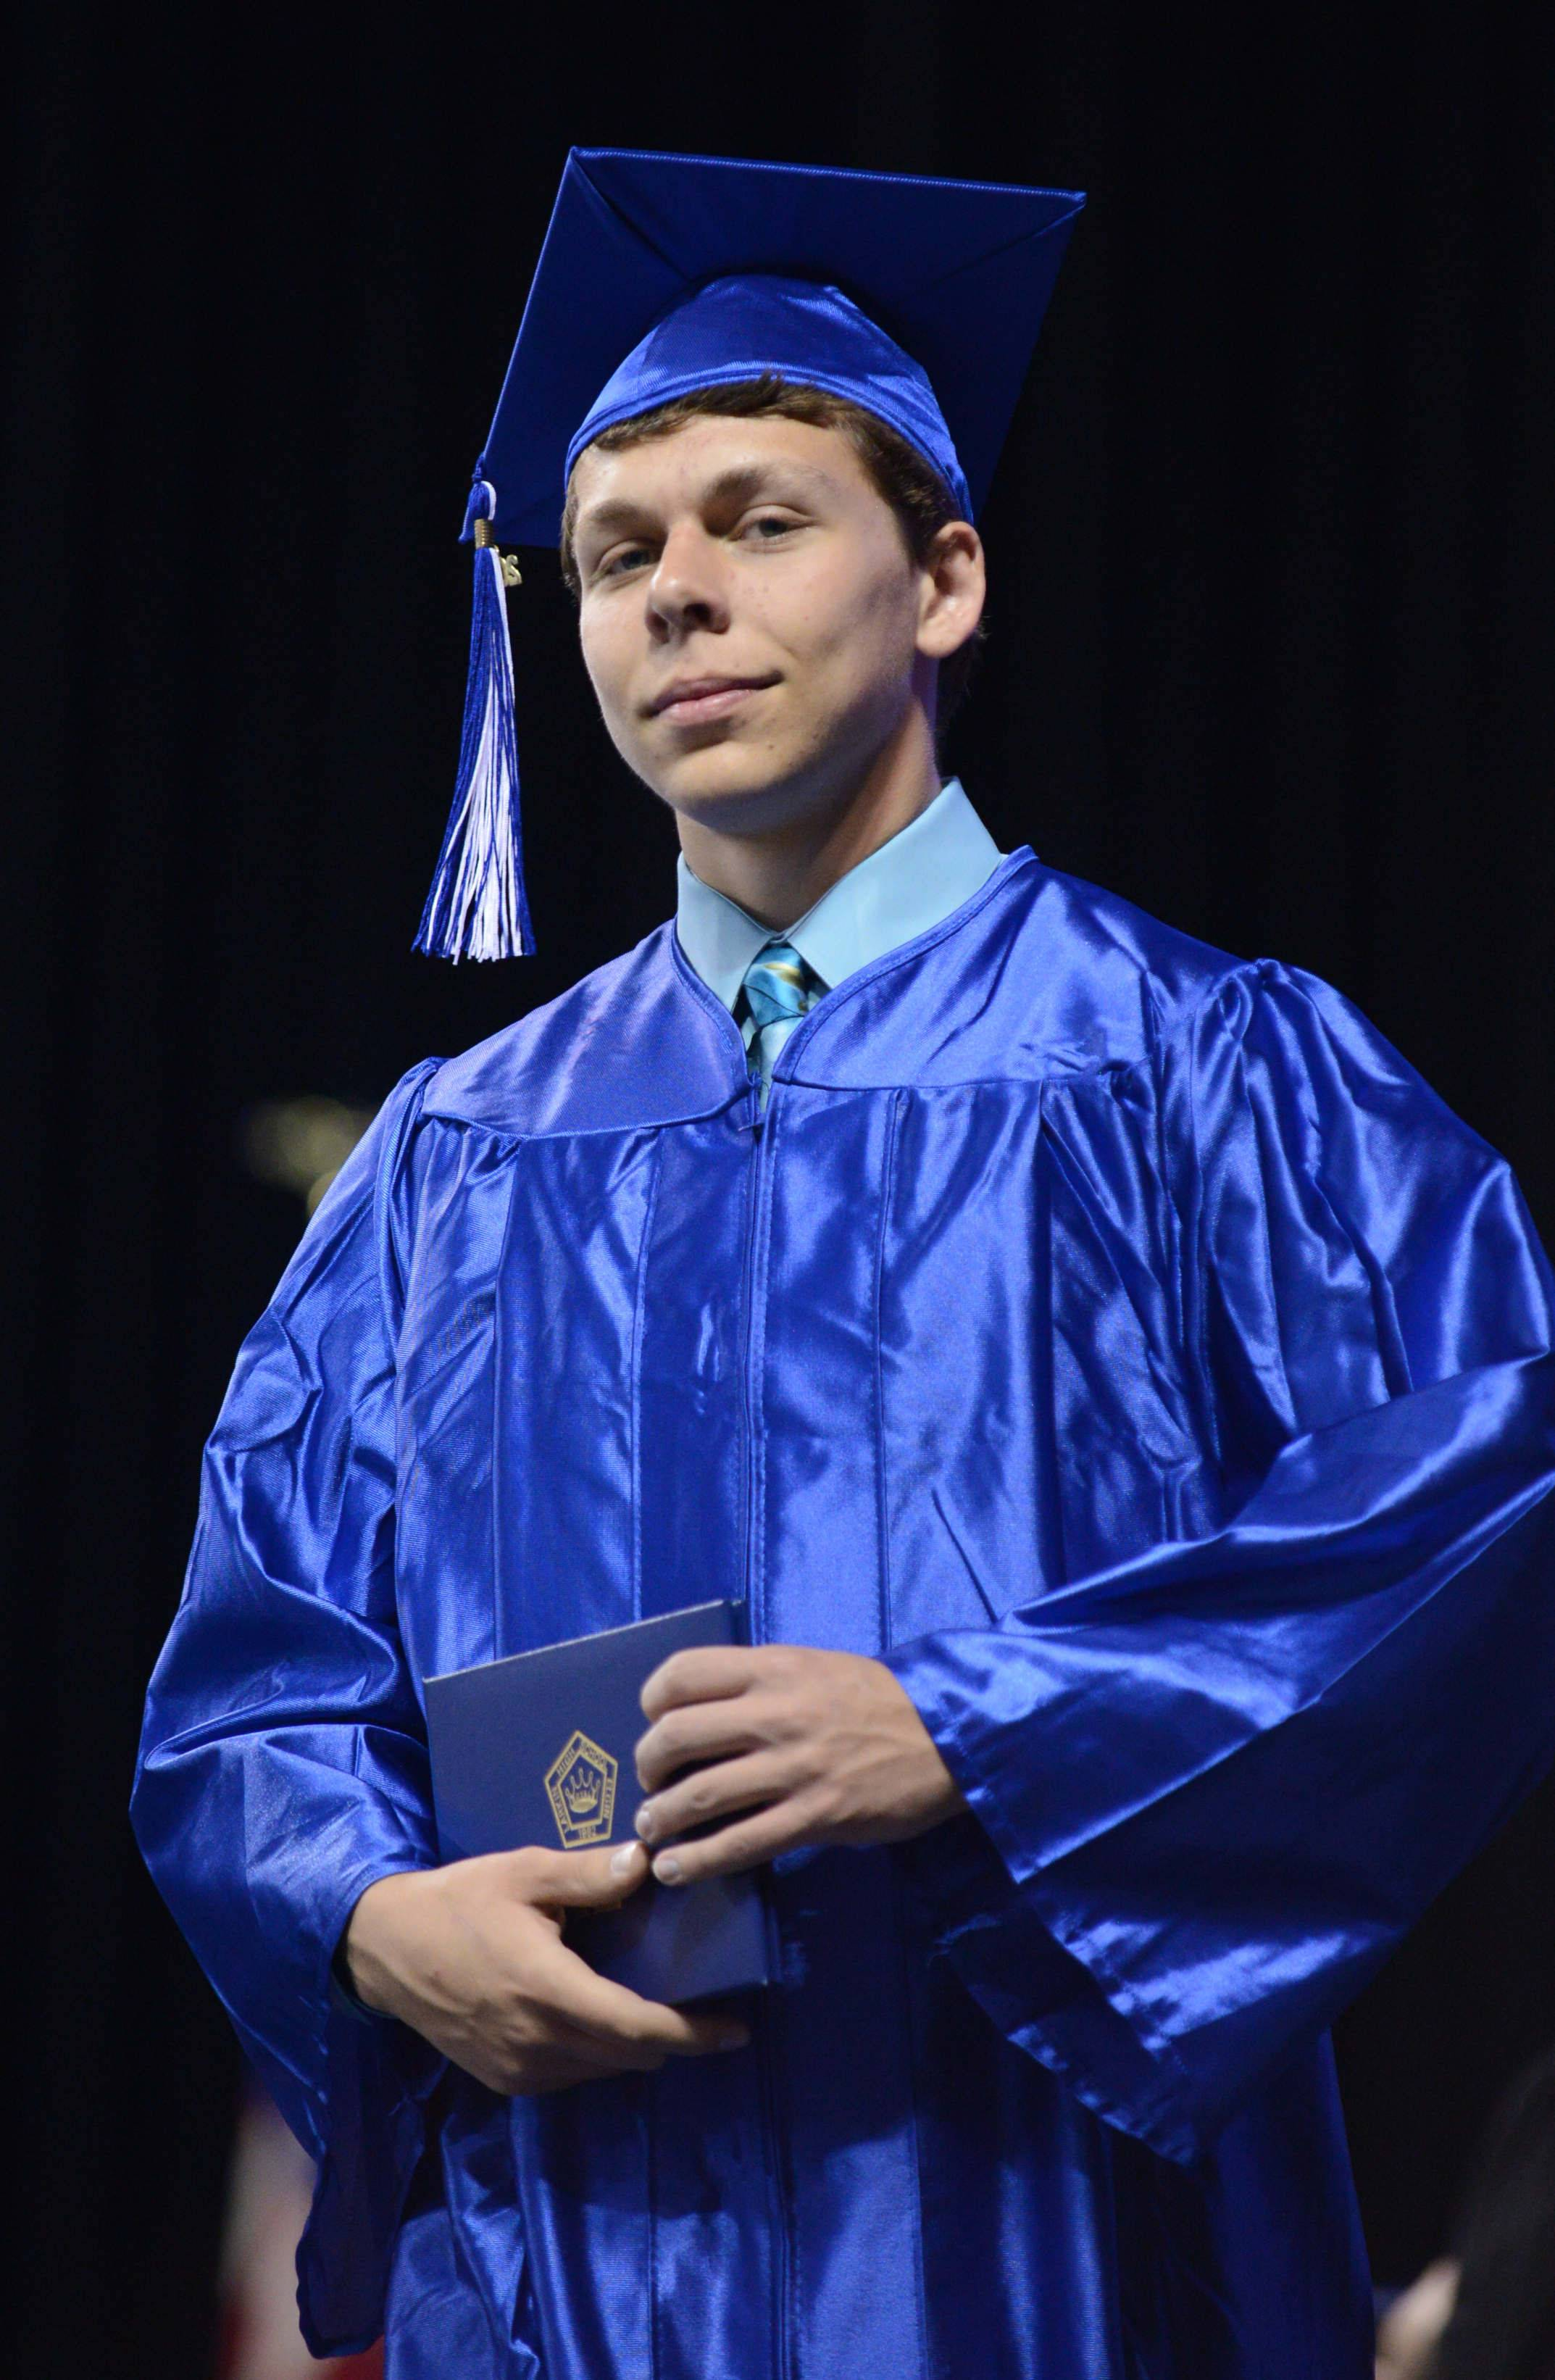 Images from the Larkin High School graduation Saturday, May 24th at the Sears Centre in Hoffman Estates.